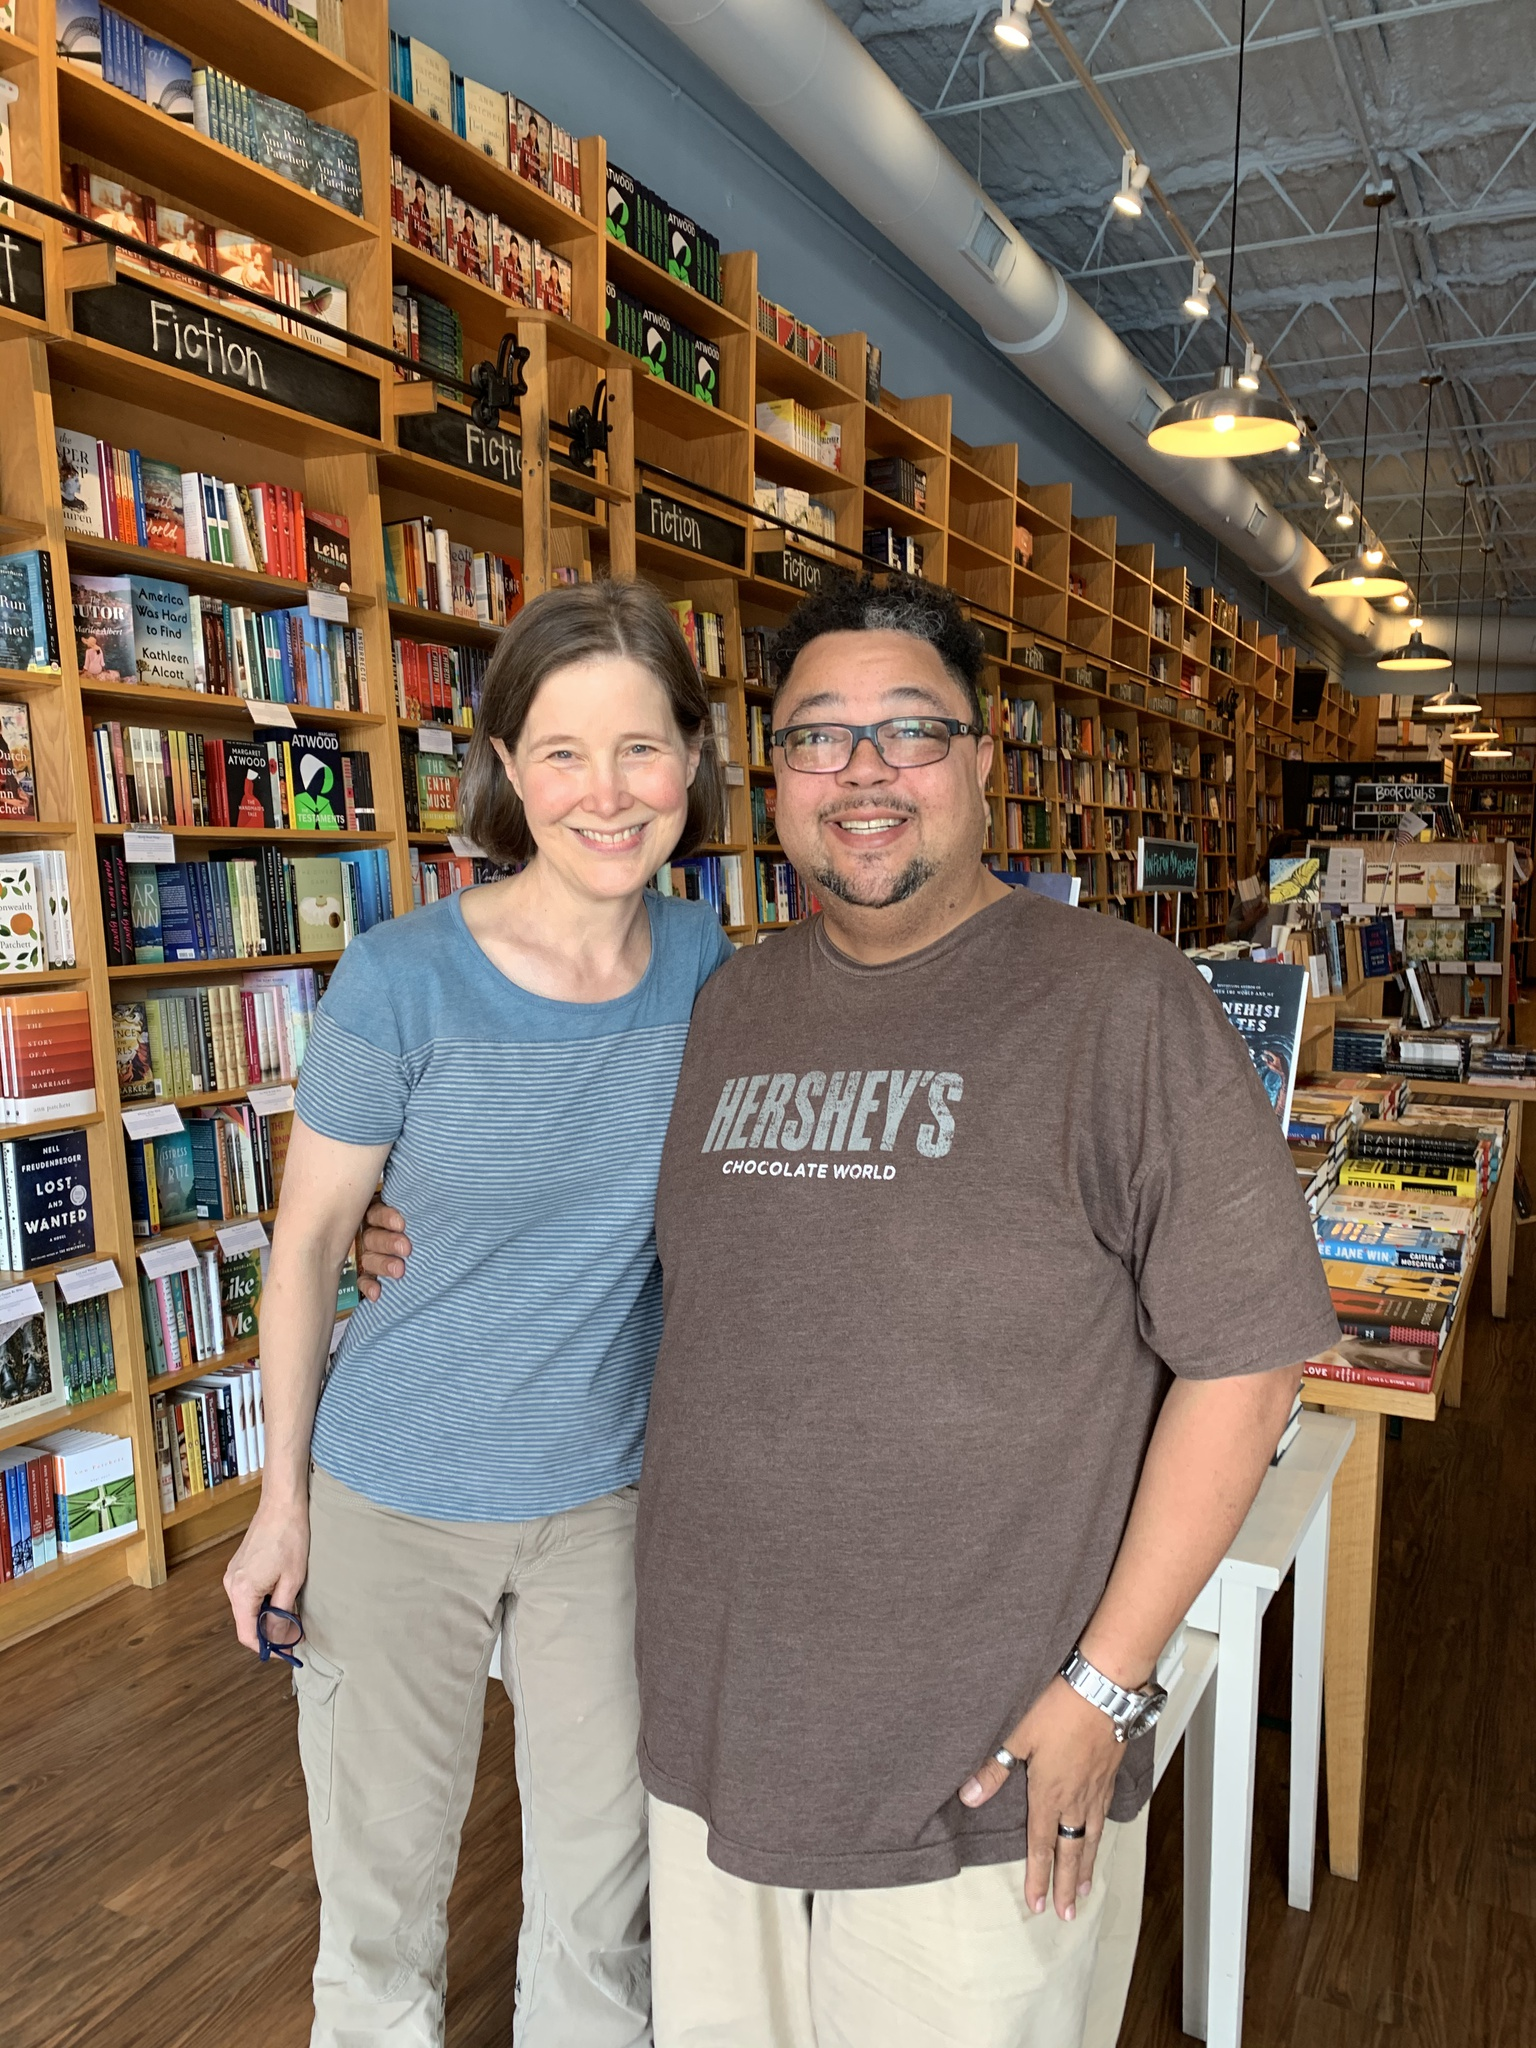 Monti and one of Sharma's favorite authors Ann Patchett. She owns a book store in Green Hills called Parnassus Books. Ann had surprised me at the checkout and asked if she could sign and personalize the book I was buying for Sharma's birthday.